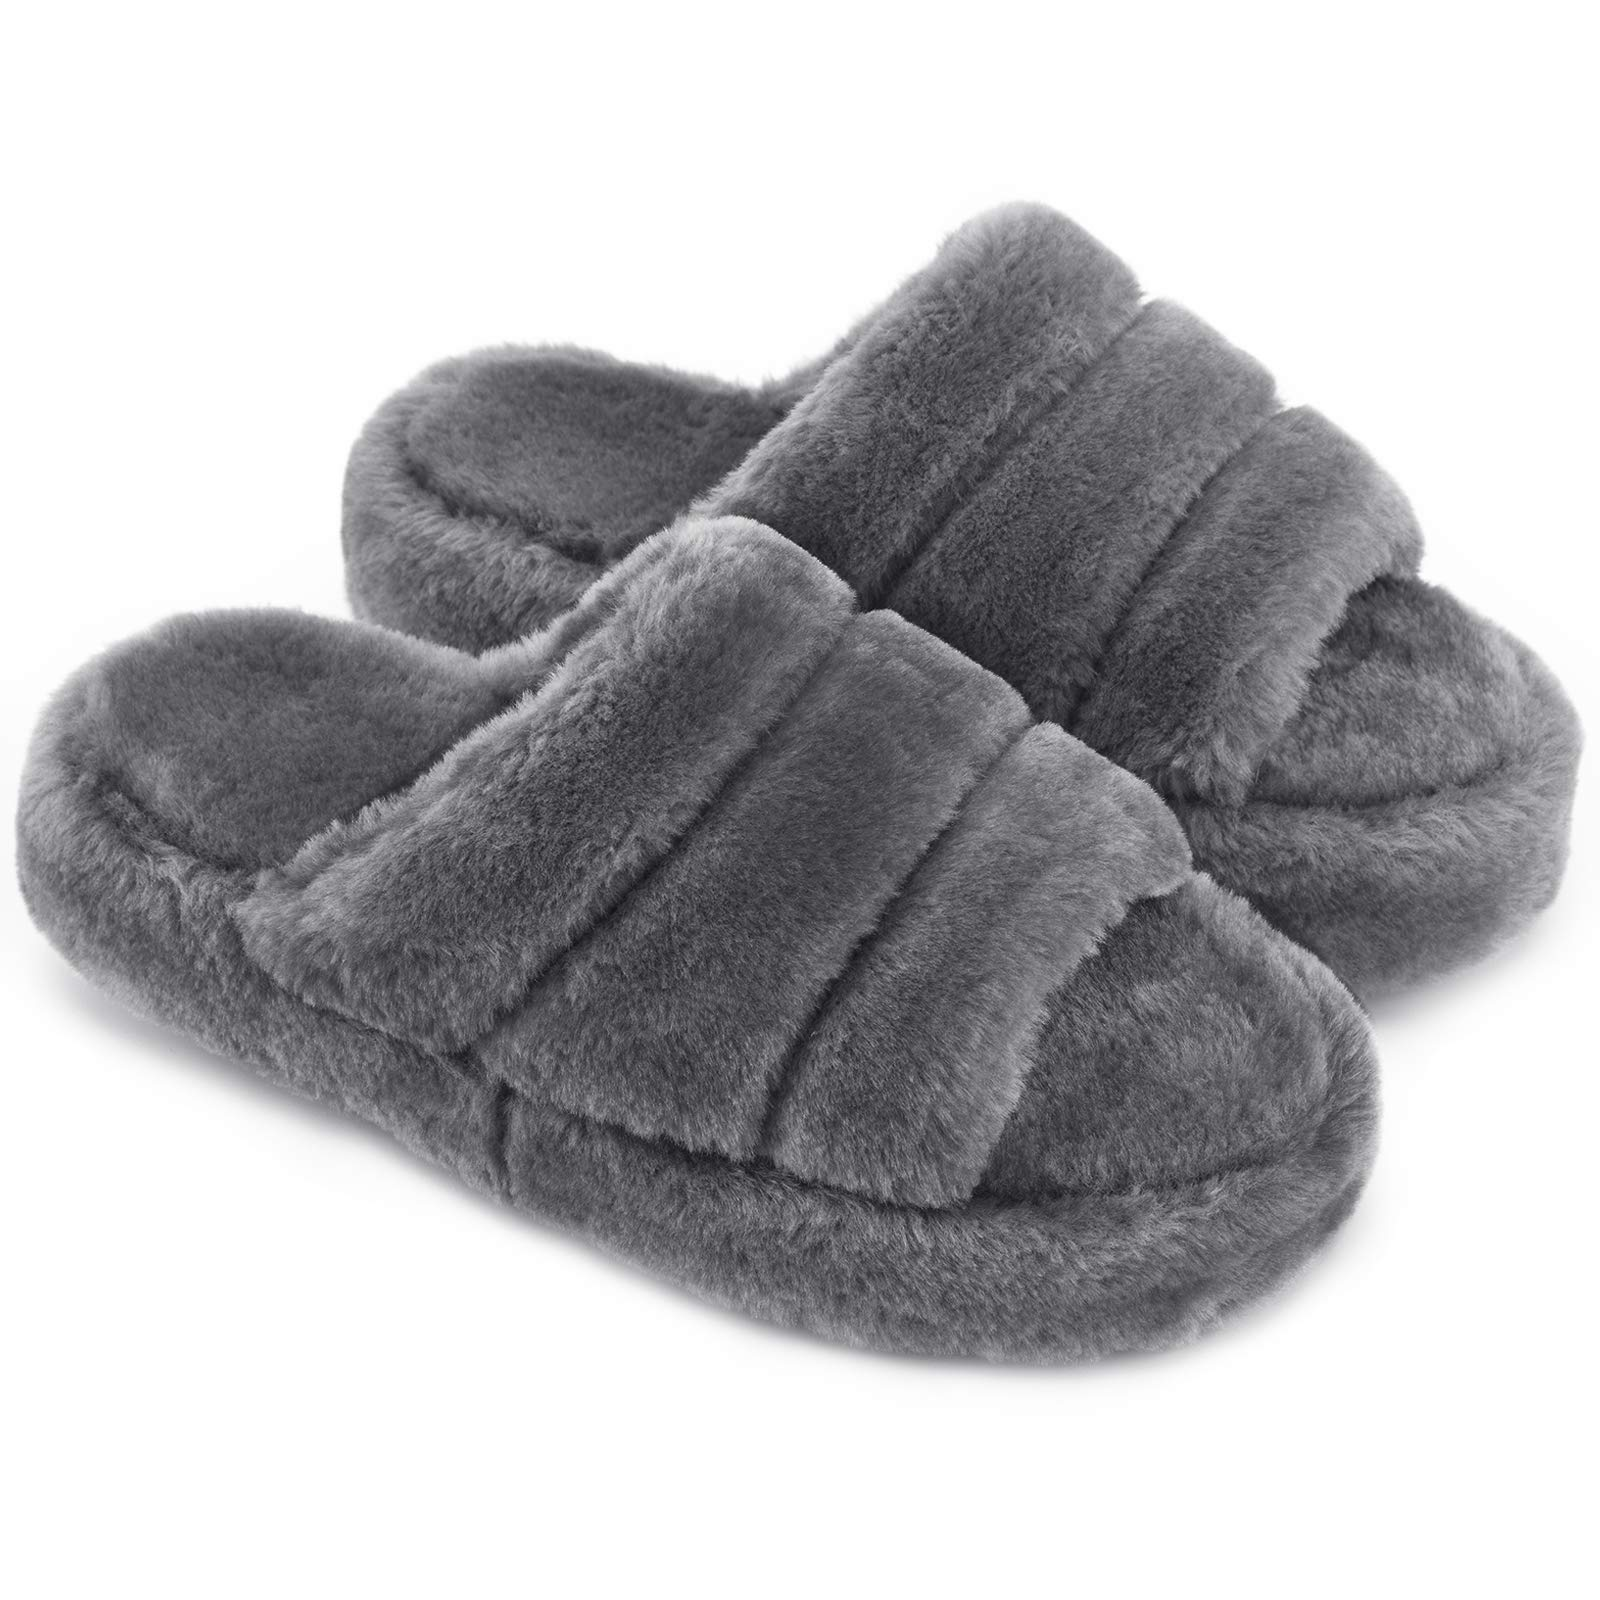 Honalika Comfy Open Toe House Slippers for Women Indoor Cozy Soft Womens